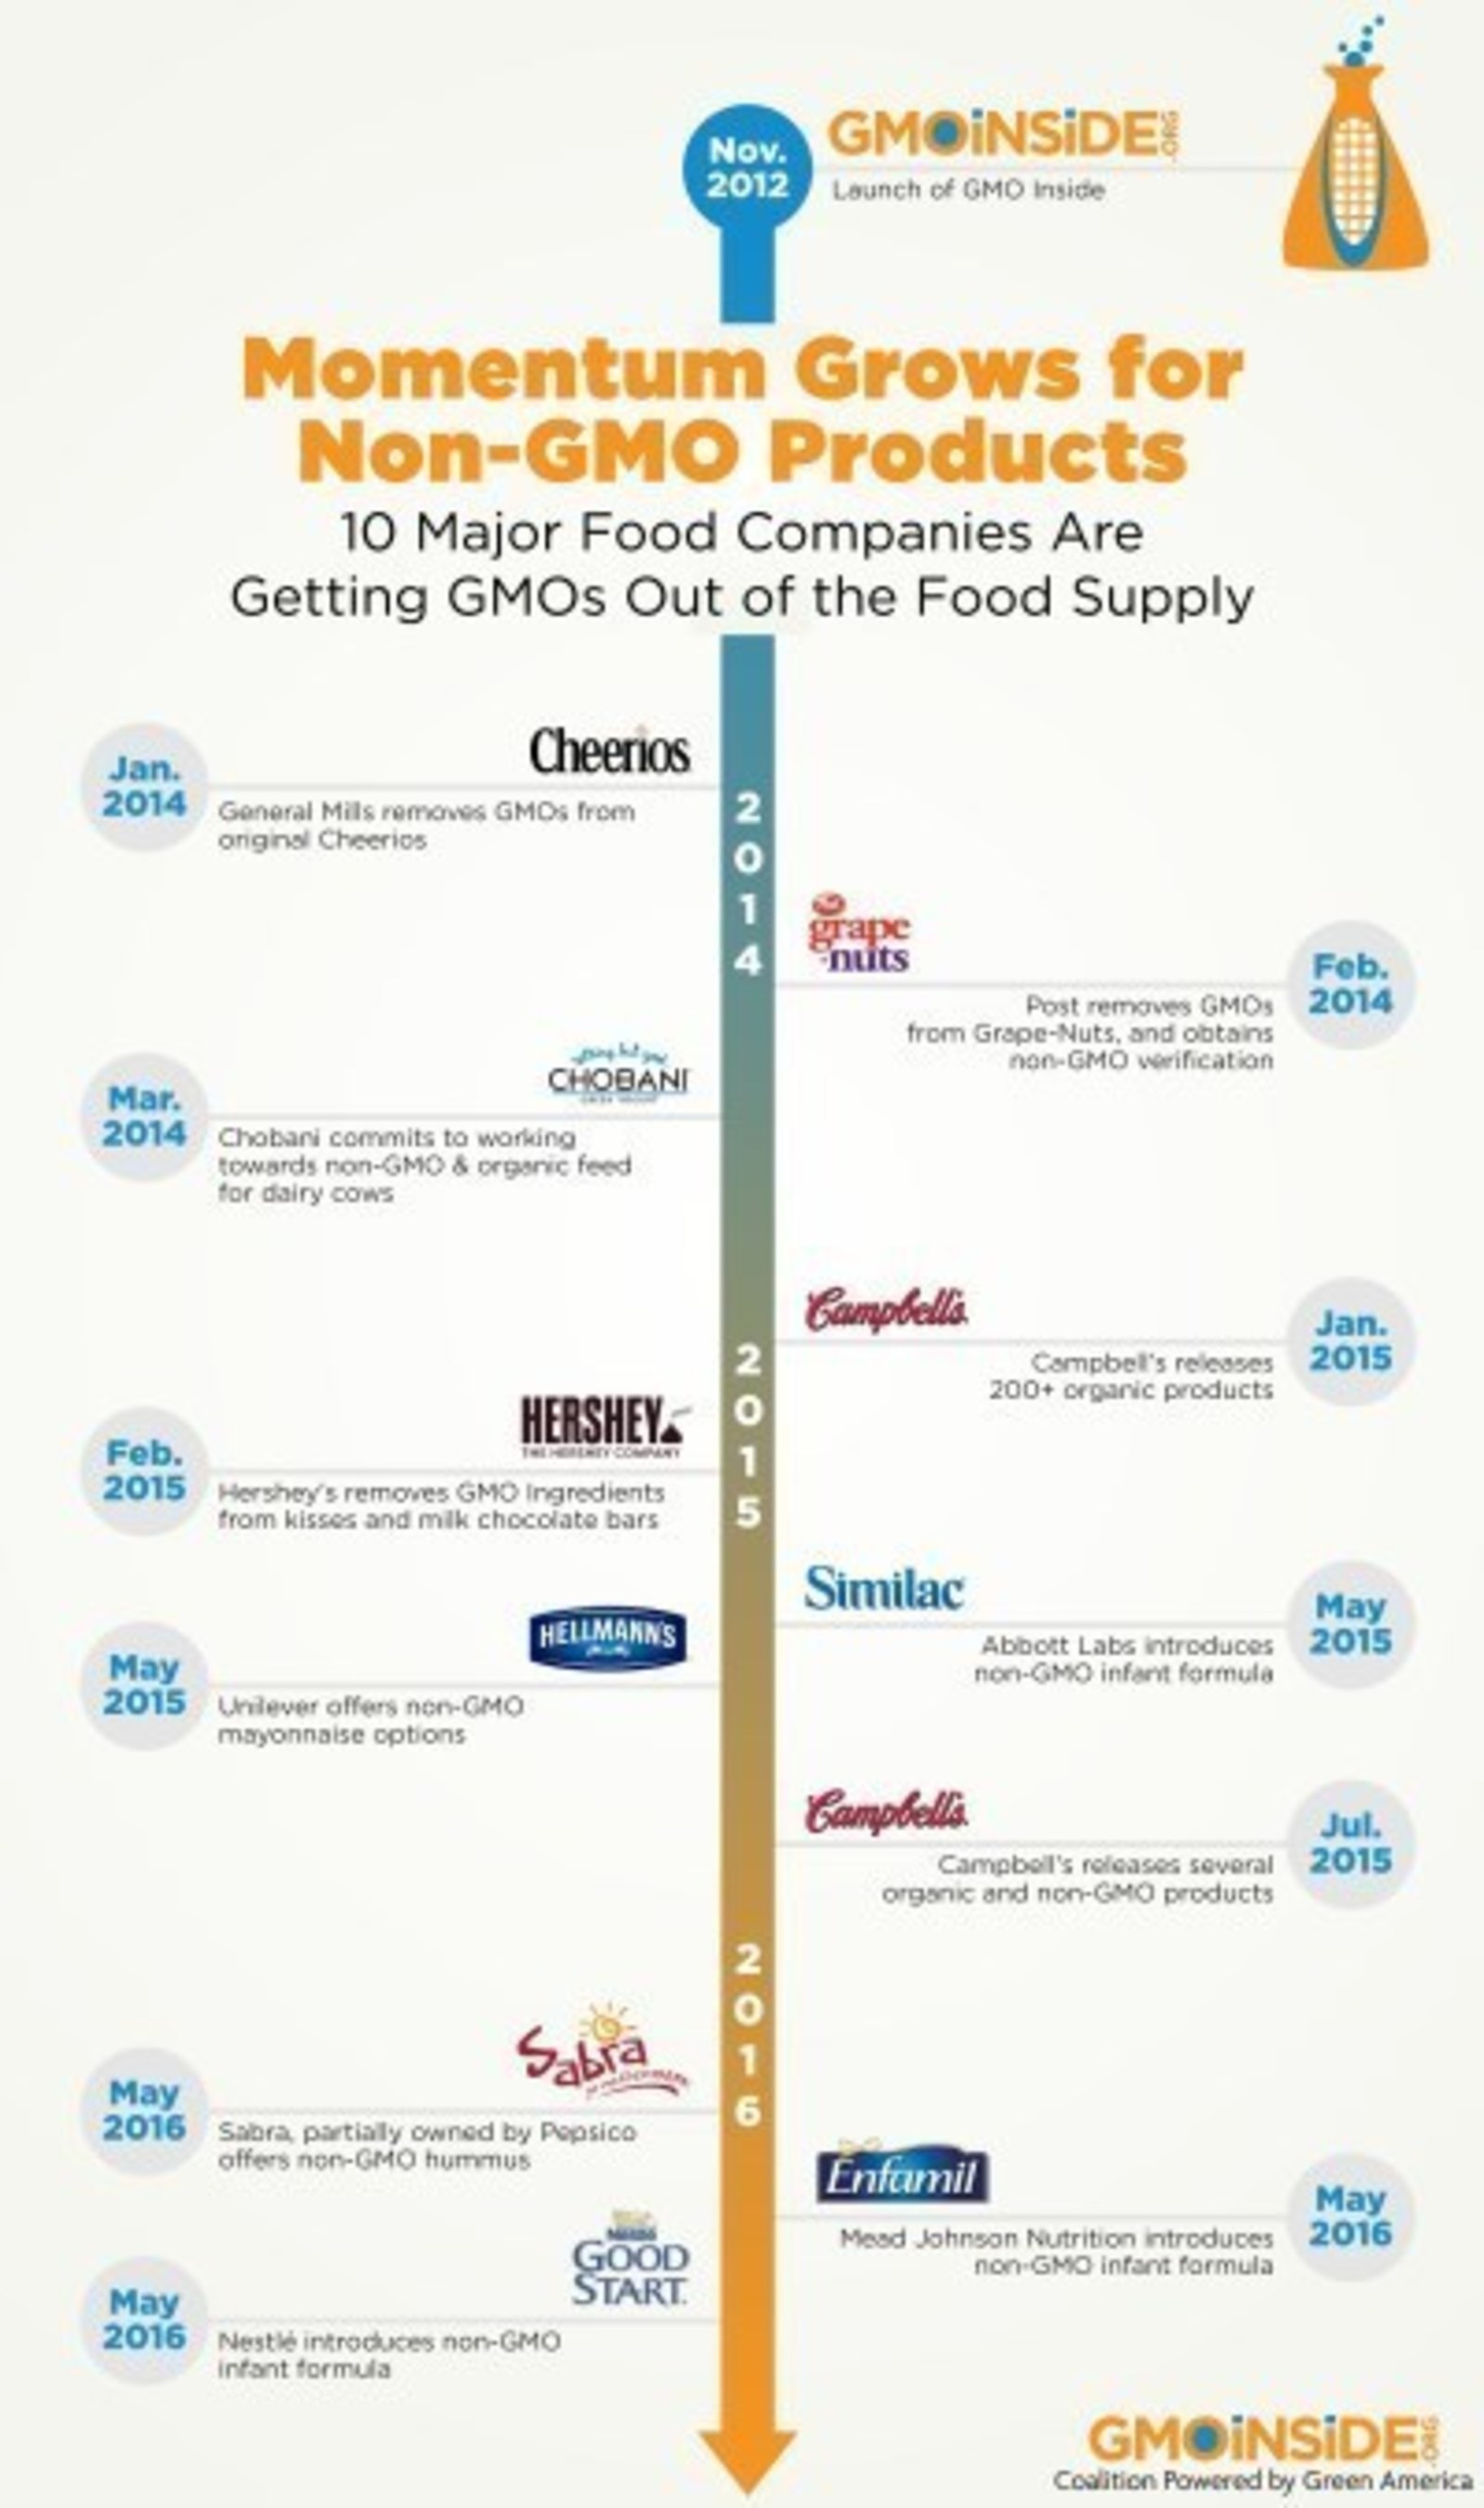 Momentum Grows for Non-GMO Products